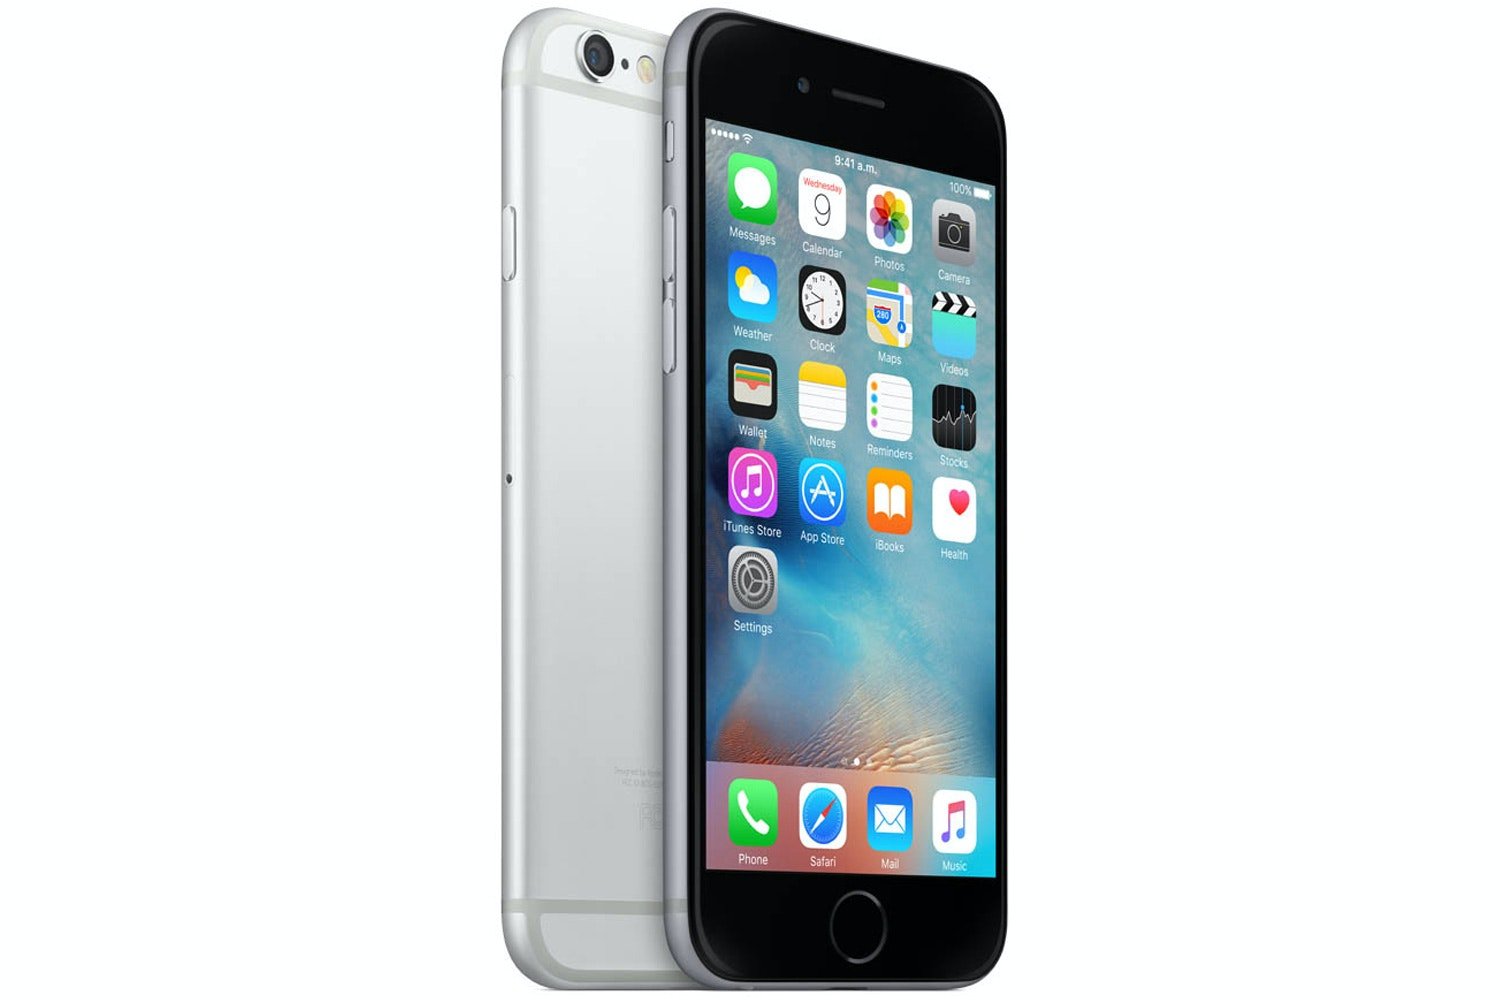 iPhone 6 Plus | 16GB